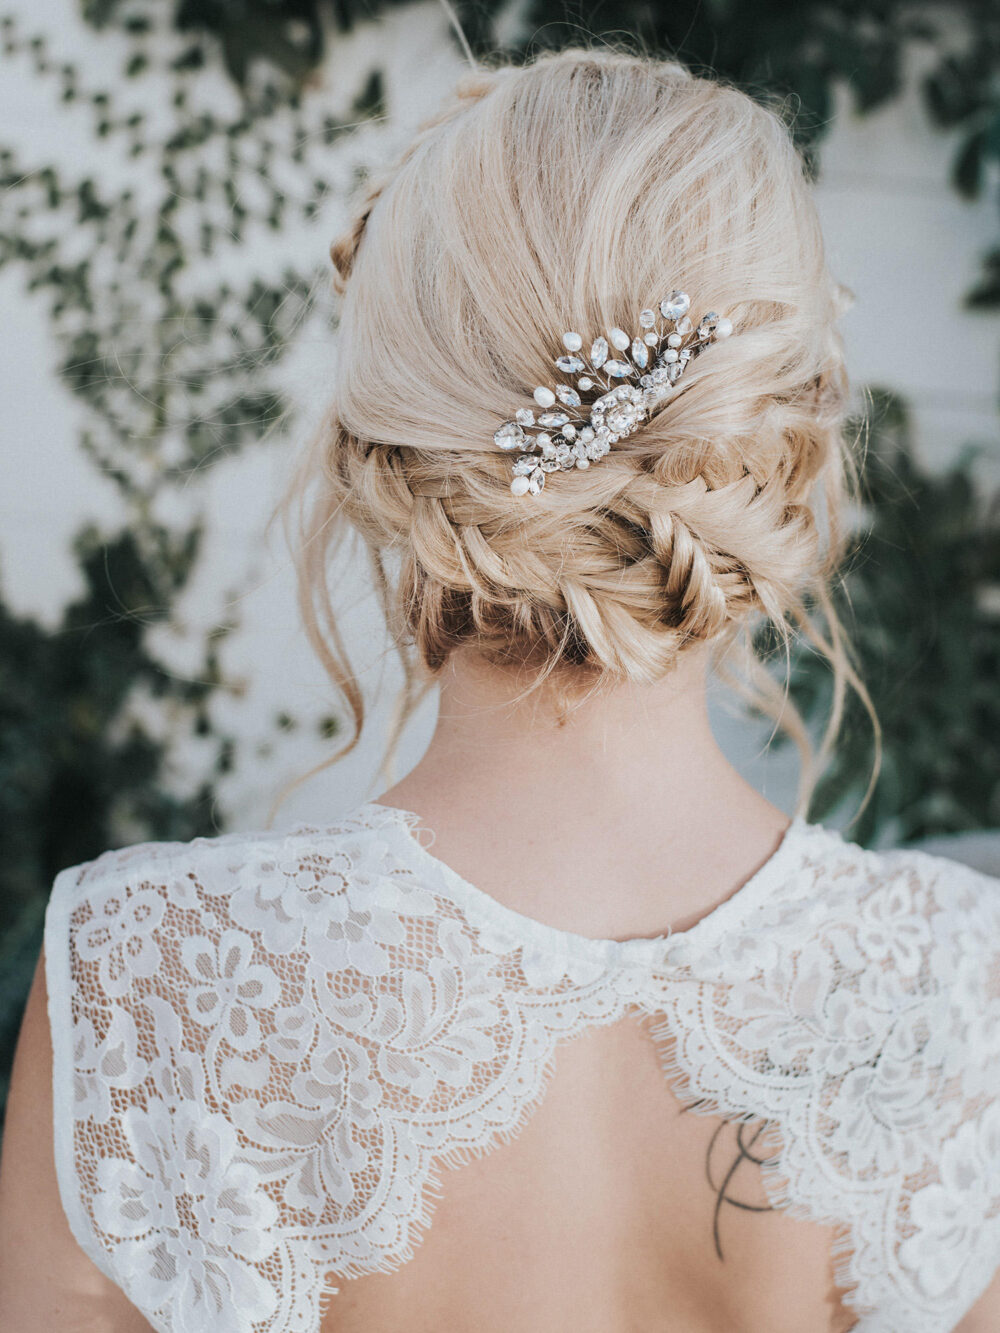 """Wedding Hair Accessories, Comb, Bridal Headpiece - """"Collette"""" Small Comb in Silver Or Gold"""